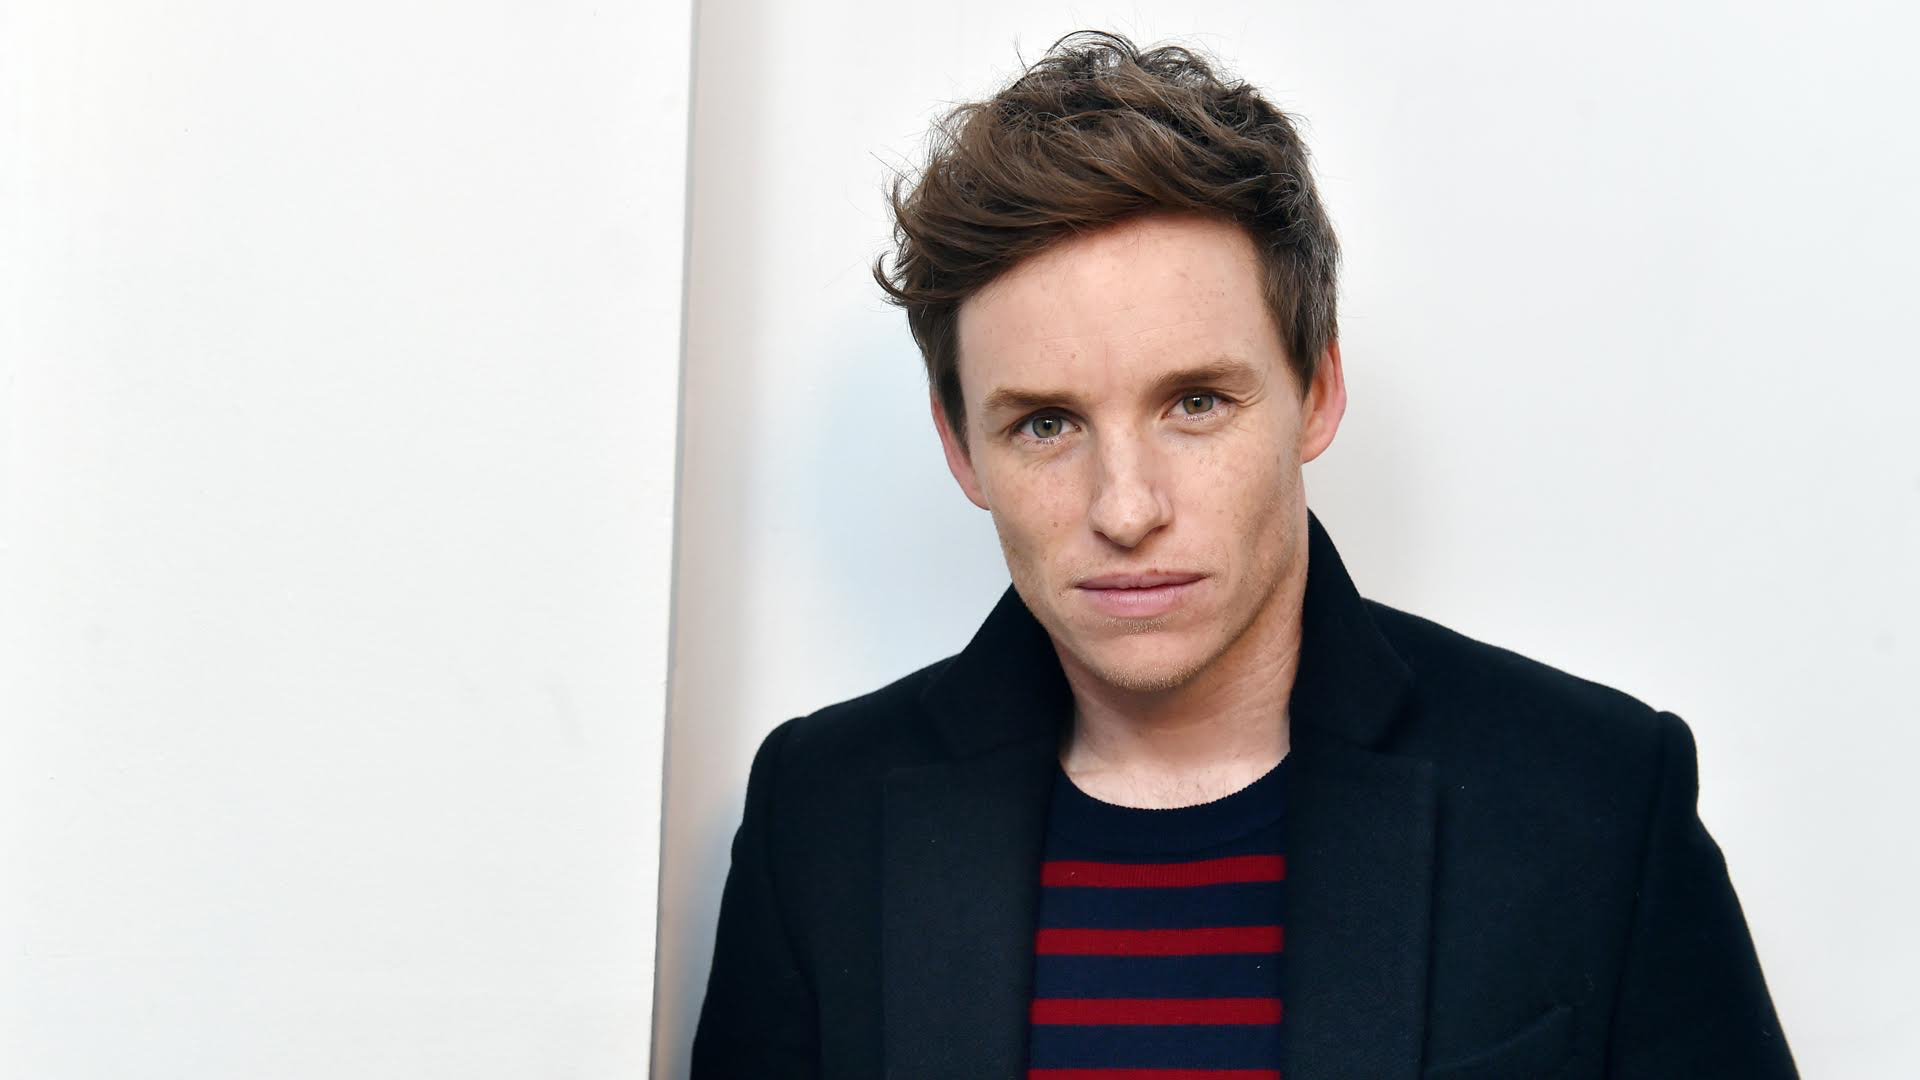 Eddie Redmayne captured in 2017 by Loftus Media photographer Sarah Jeynes © BBC